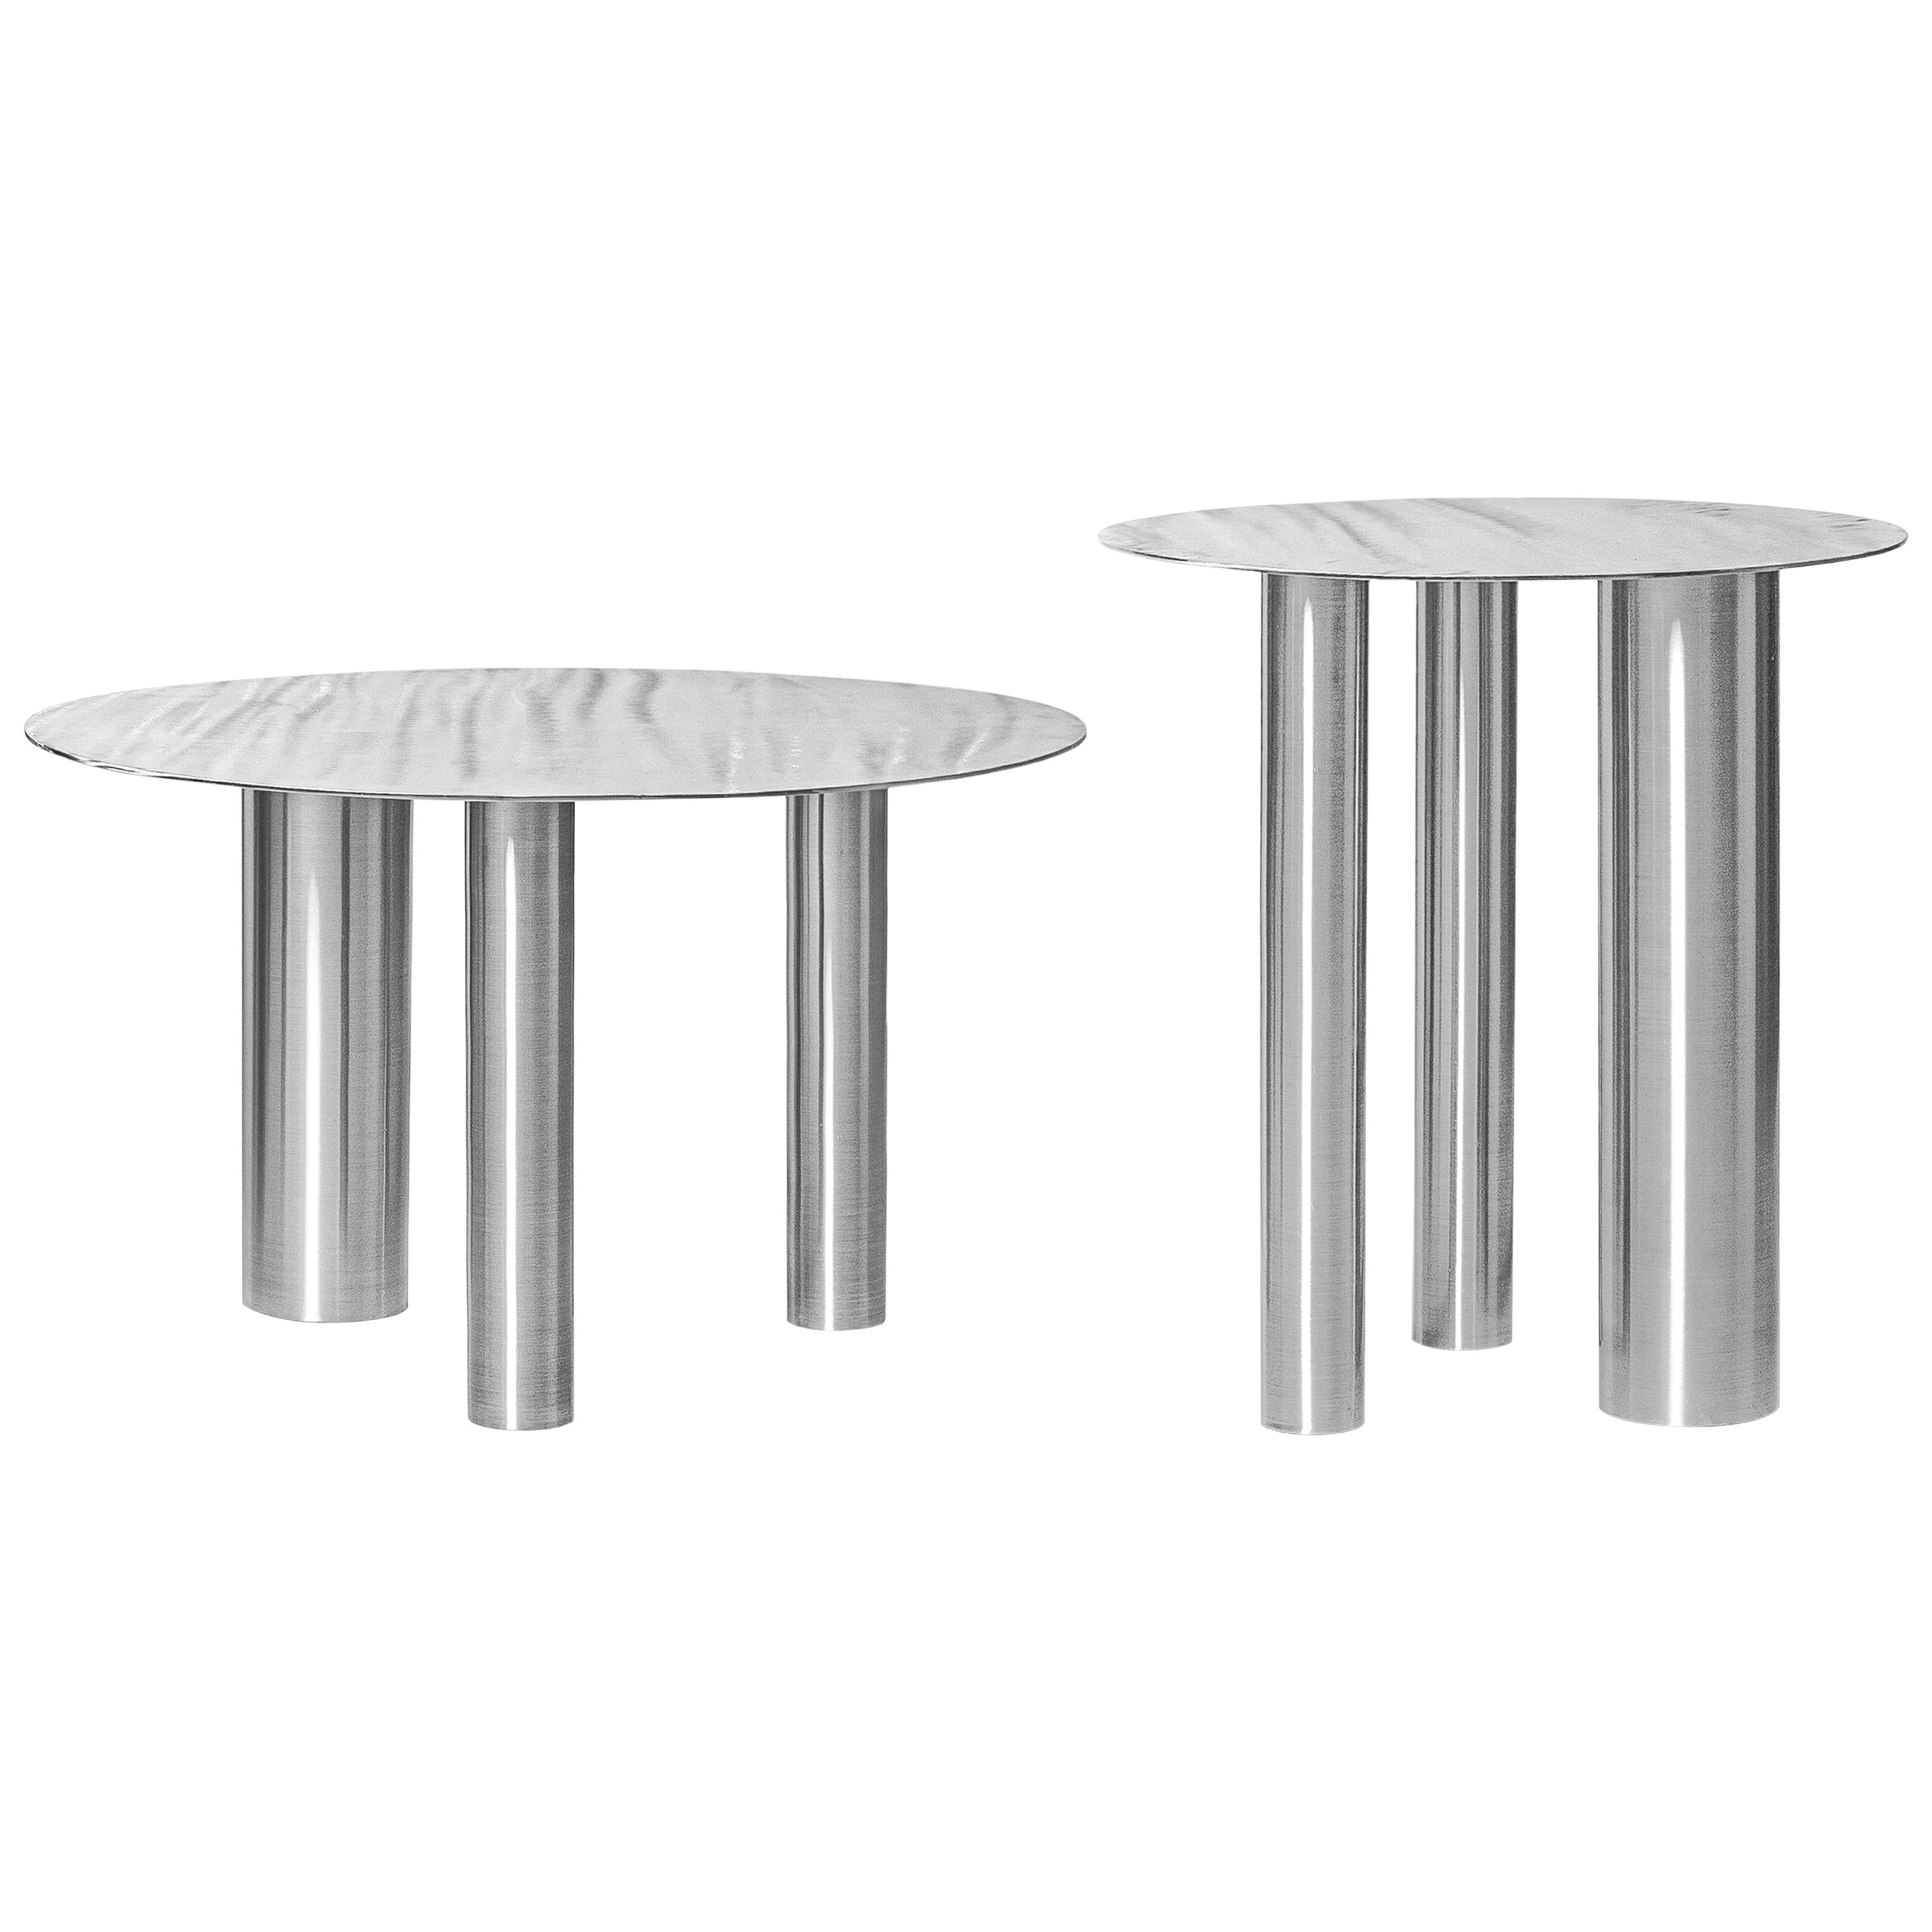 Set of Two Modern Coffee Tables Brandt CS1 made of Stainless Steel by NOOM